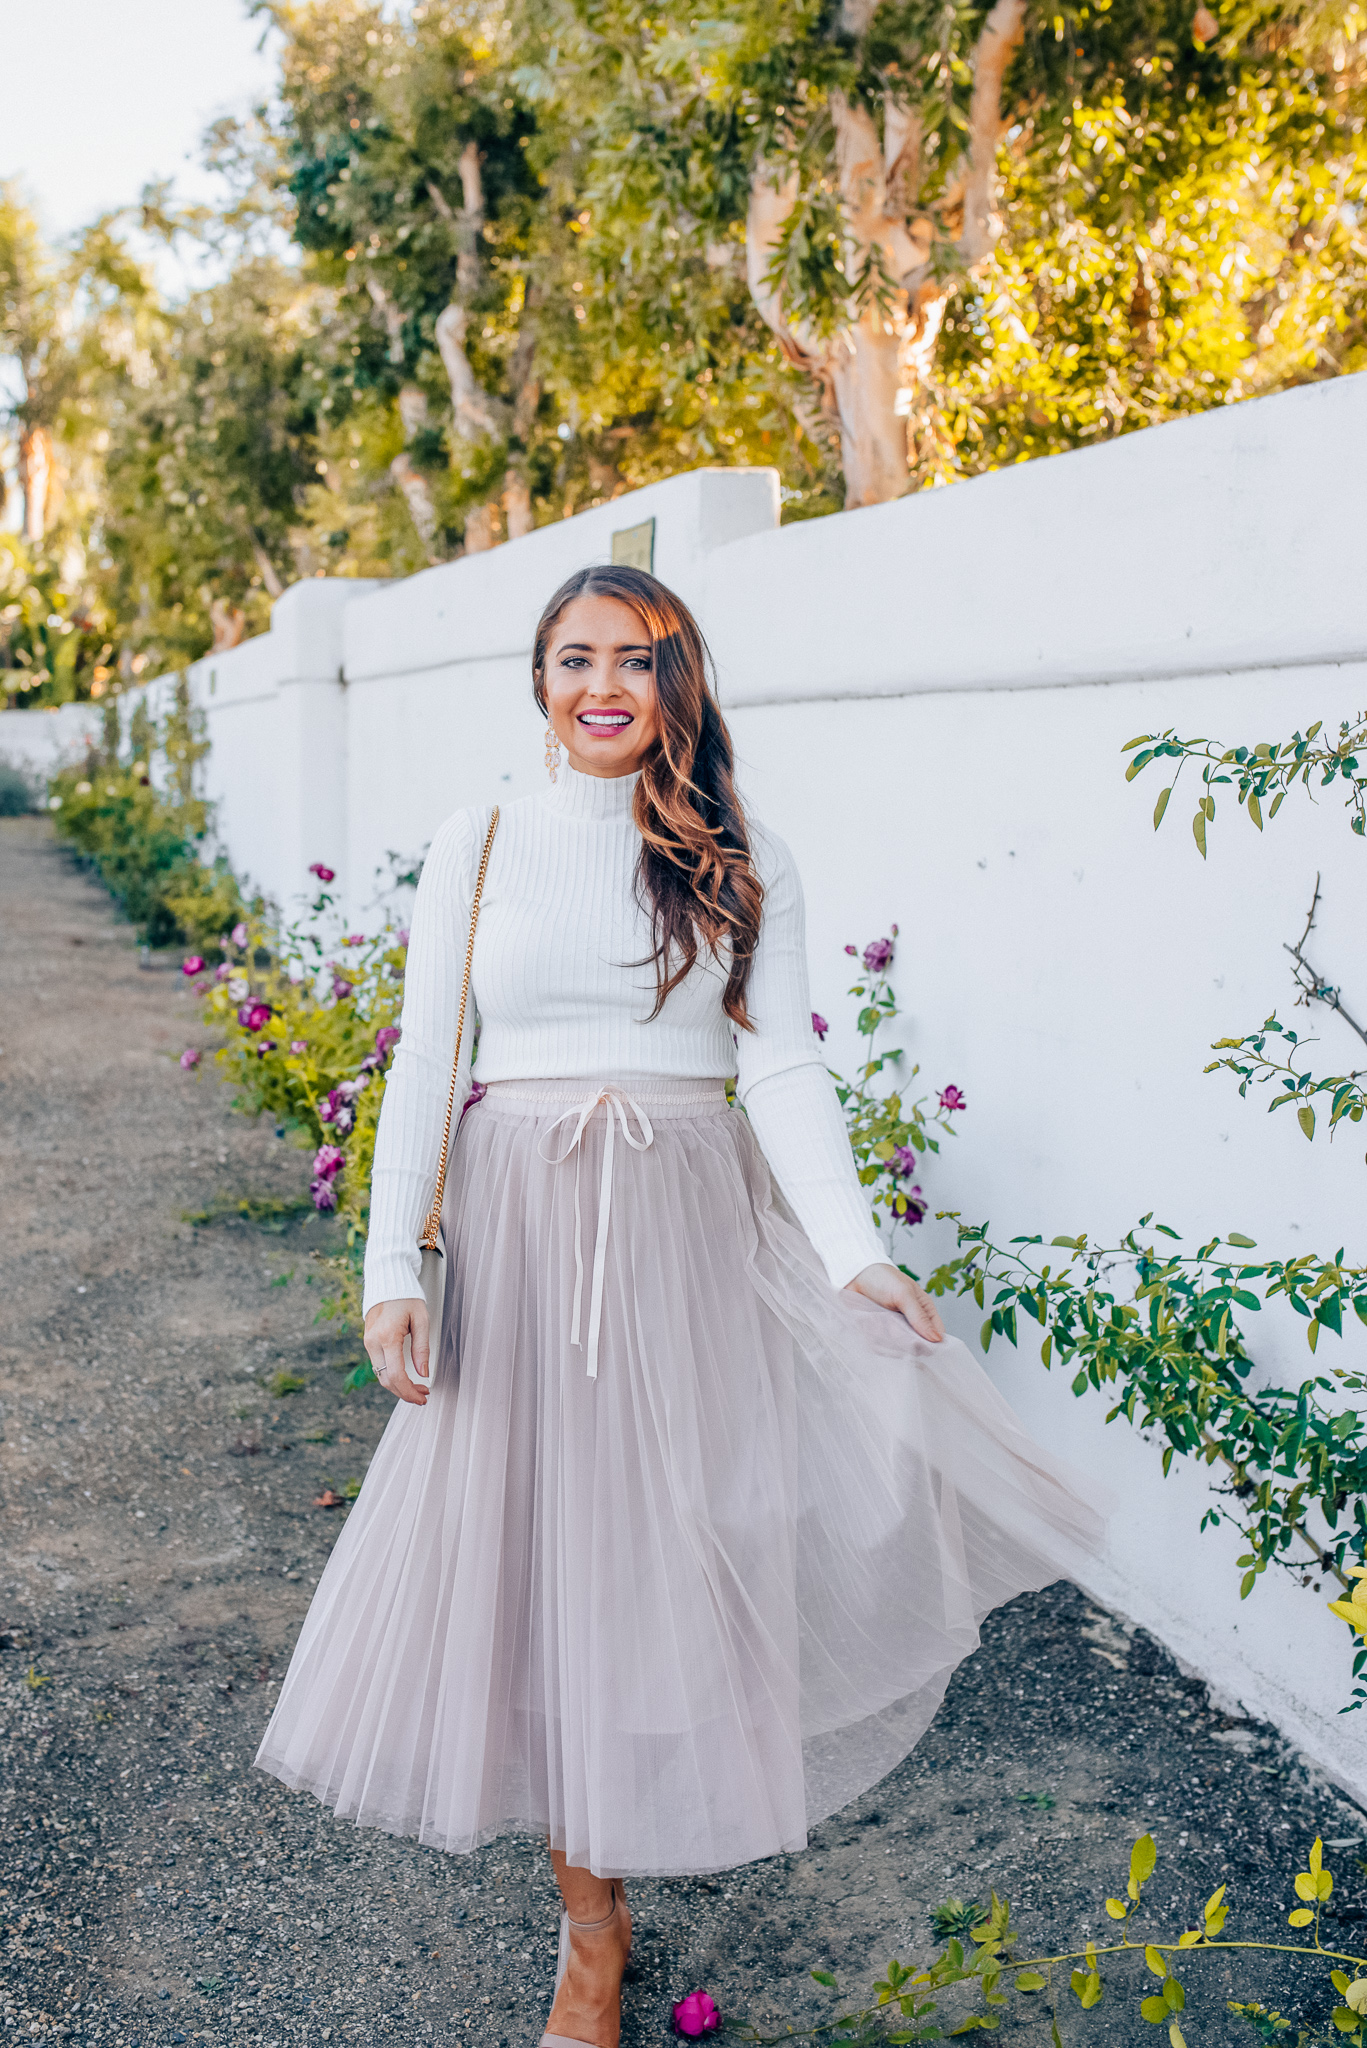 Tips to style a layered tulle skirt featured y top Los Angeles fashion blogger, Maxie Elise: image of a woman wearing a Chicwish long tulle skirt, Forever 21 cream turtleneck, Lisi Lerch earrings and Steve Madden sandals